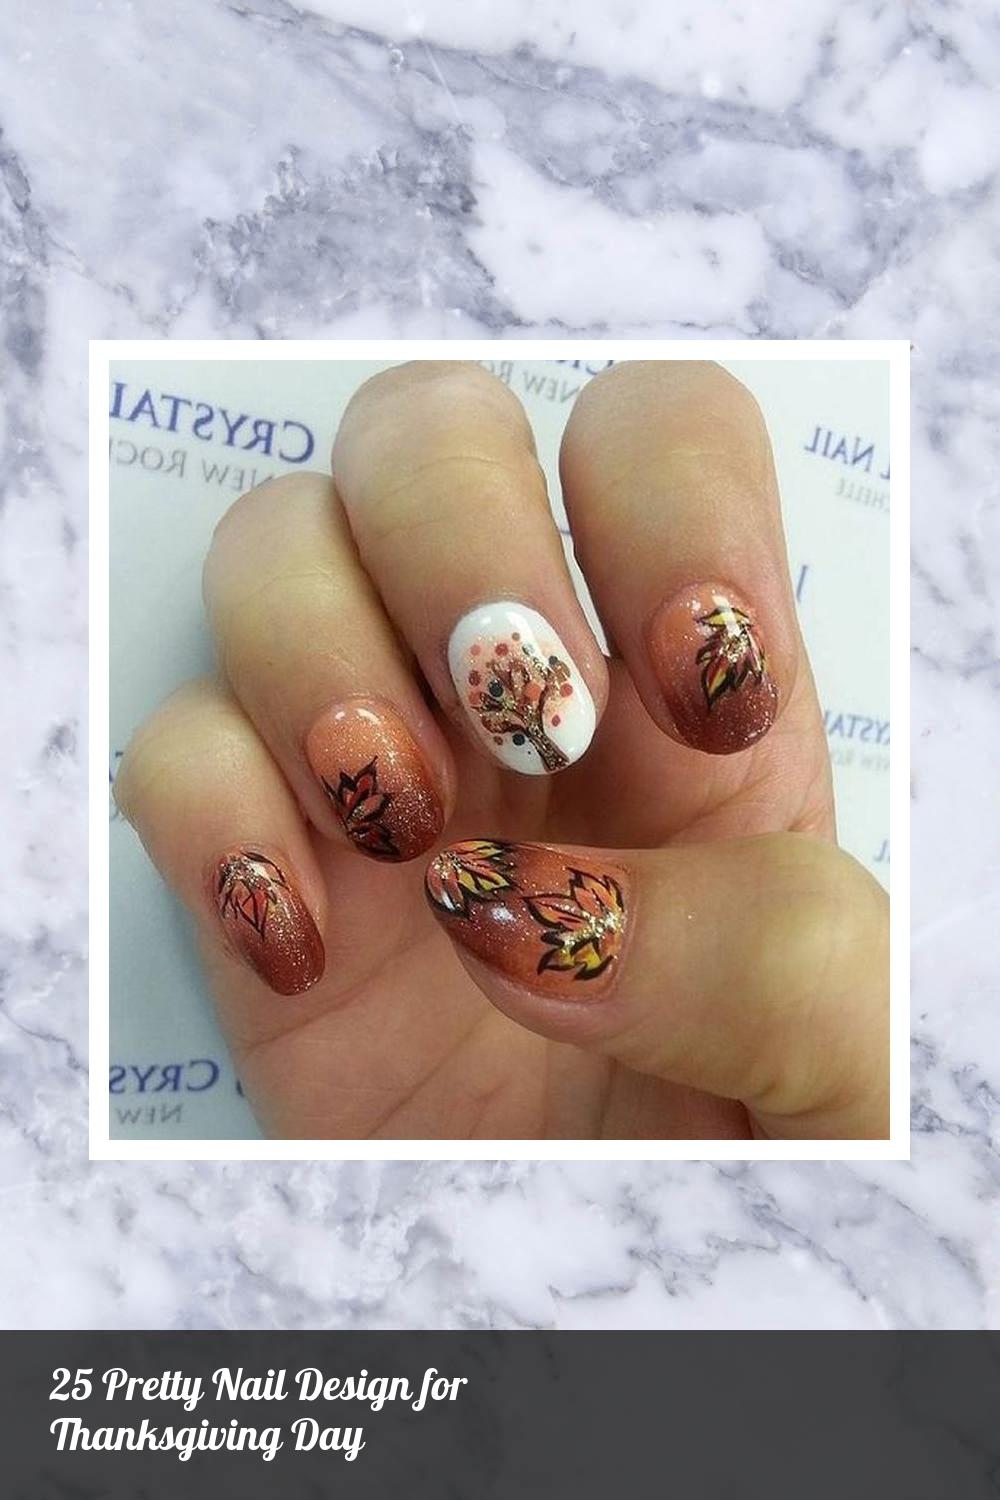 25 Pretty Nail Design for Thanksgiving Day 7